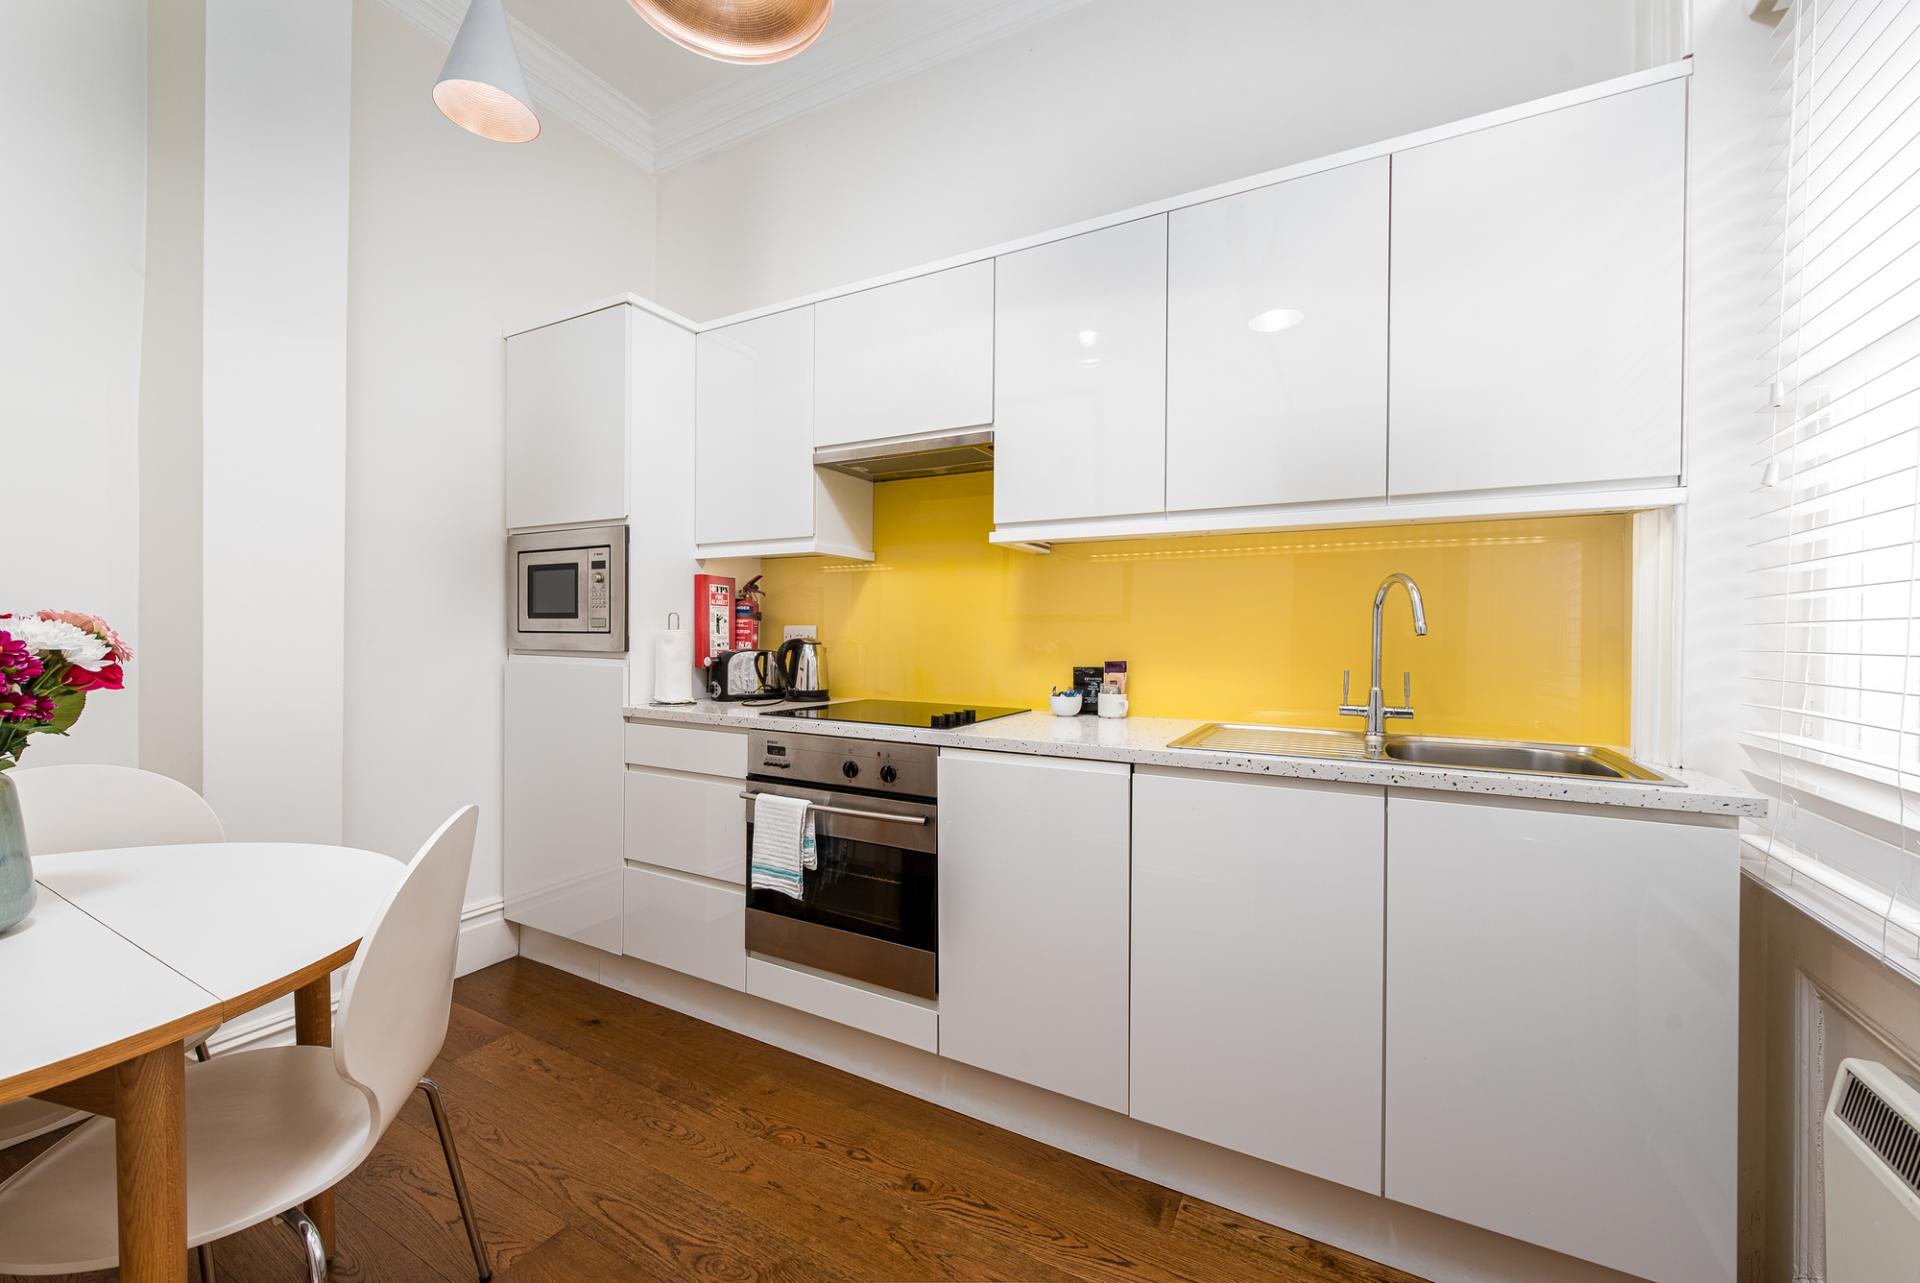 Oven at Draycott Place Serviced Apartments, Chelsea, London